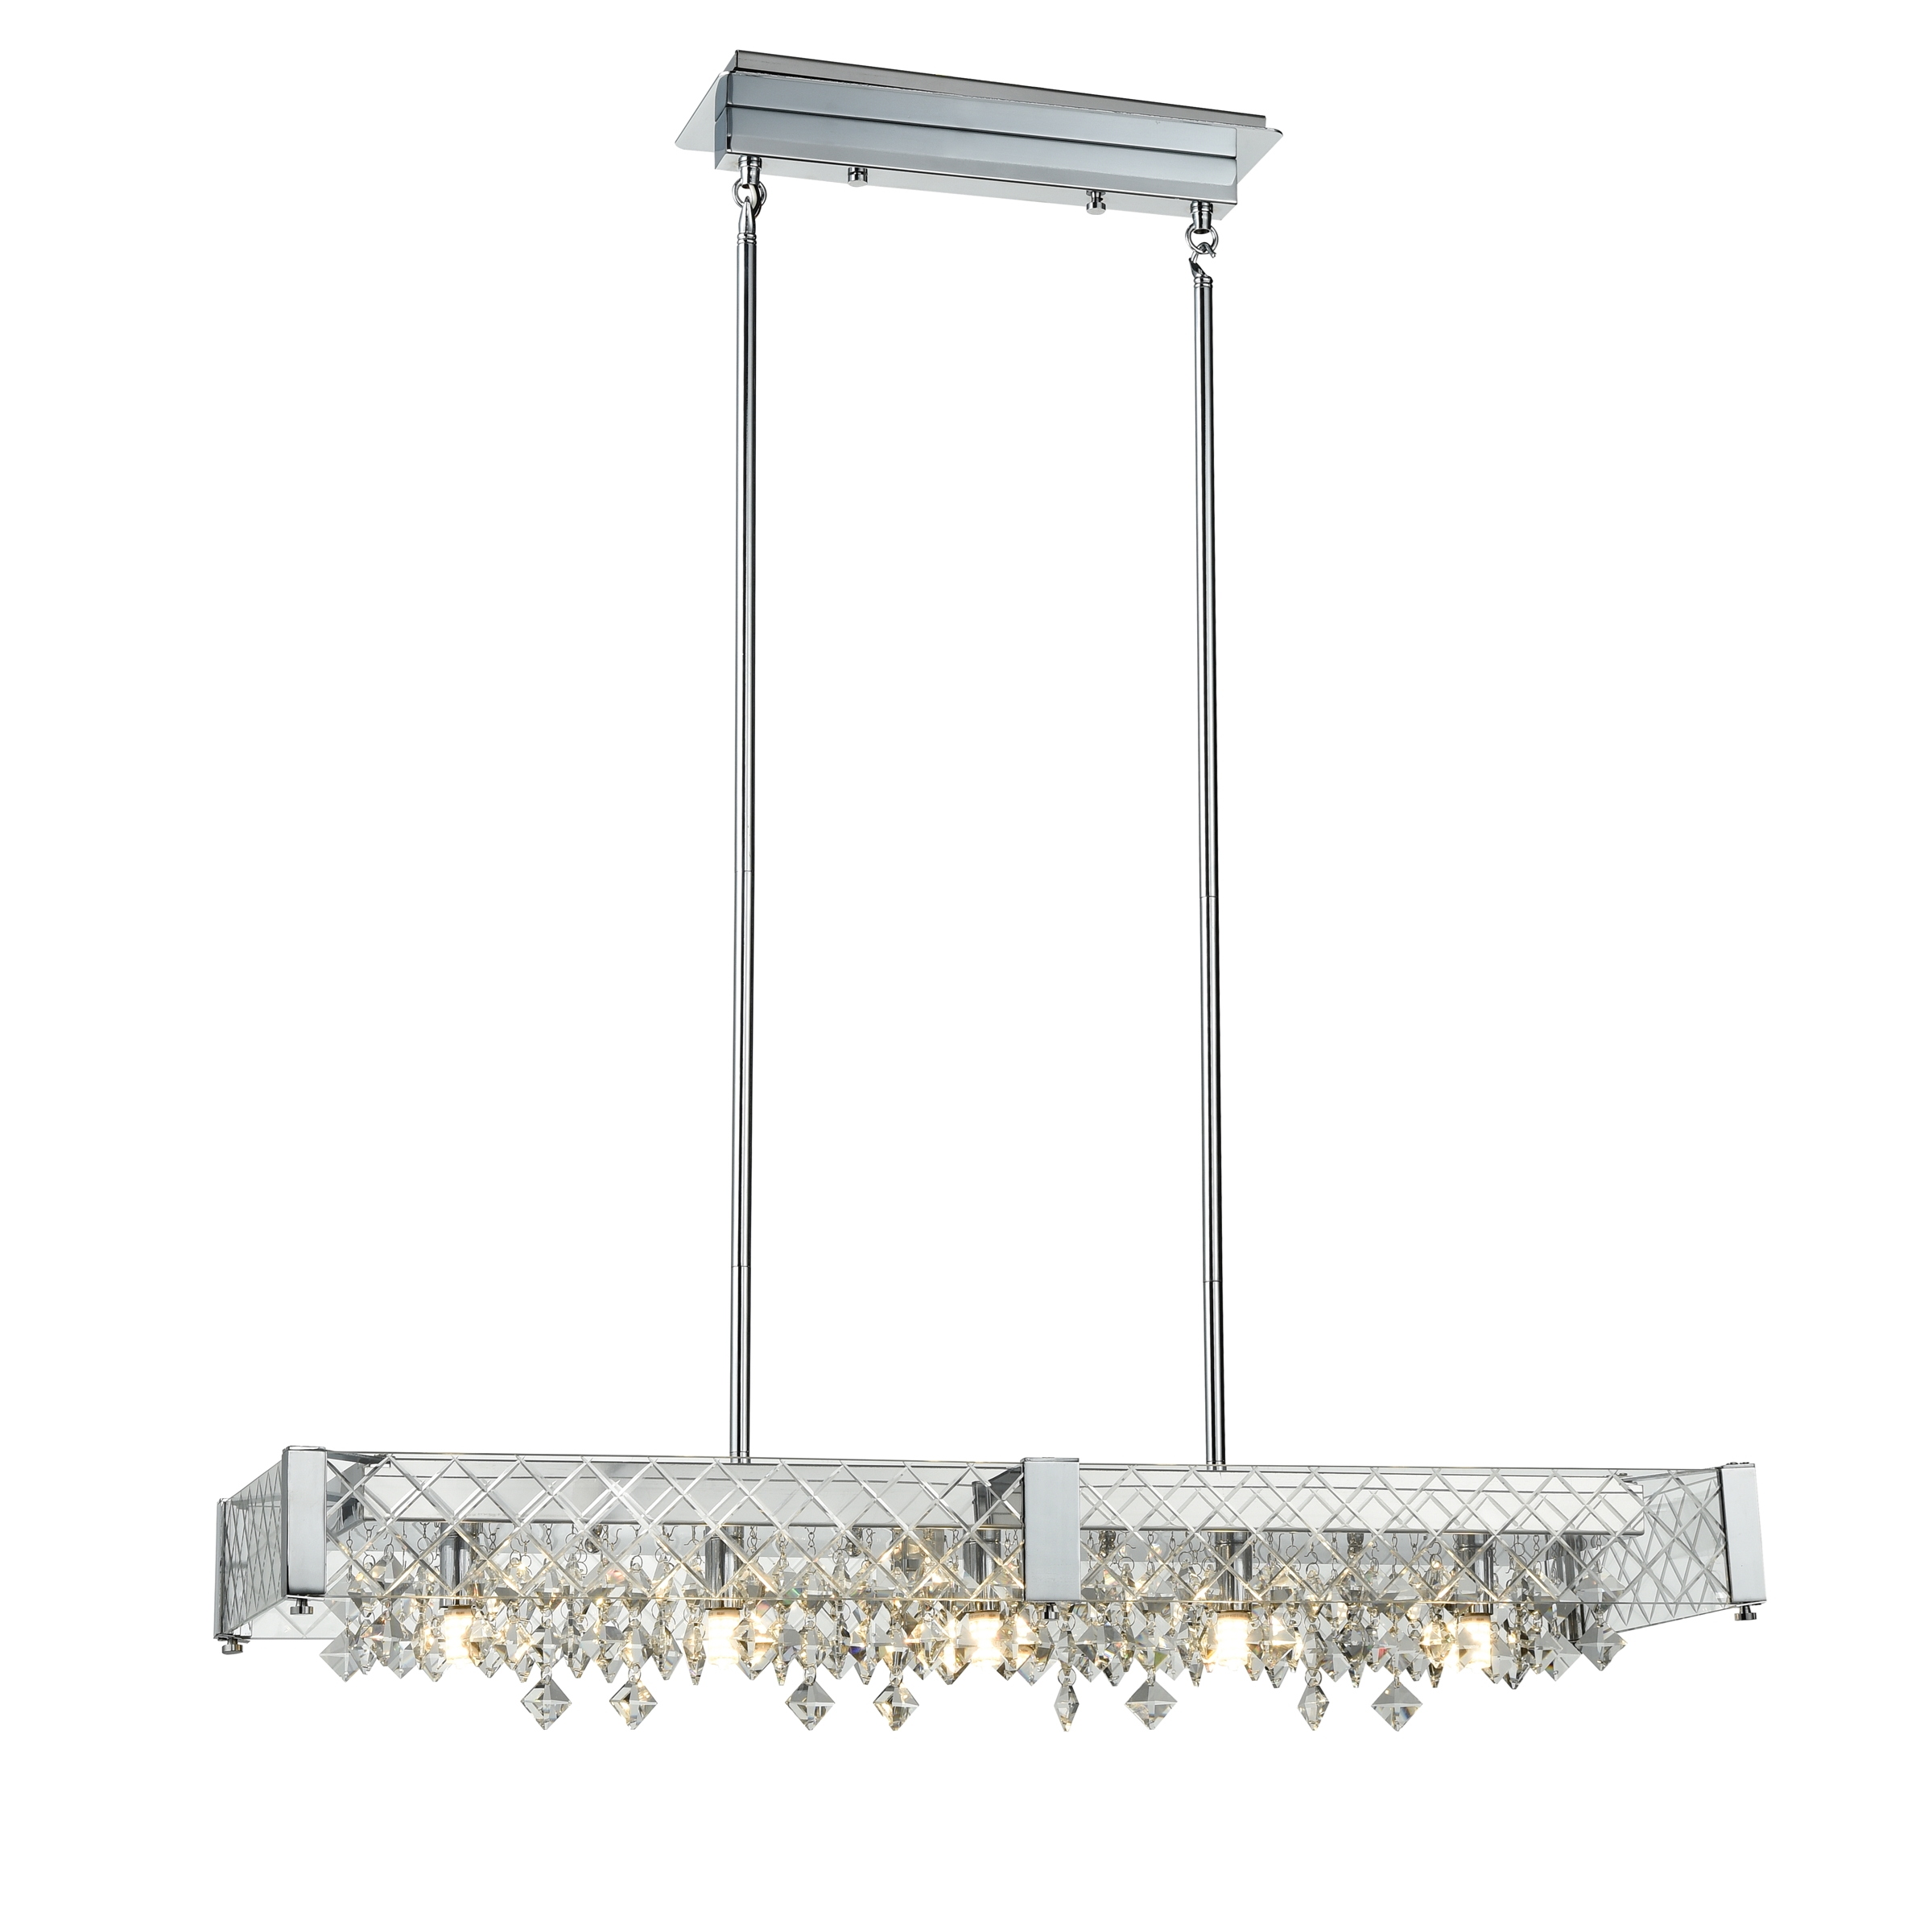 120 DVP38402 CH-CRY Reg. Price $405.99 Blowout Price $69.99